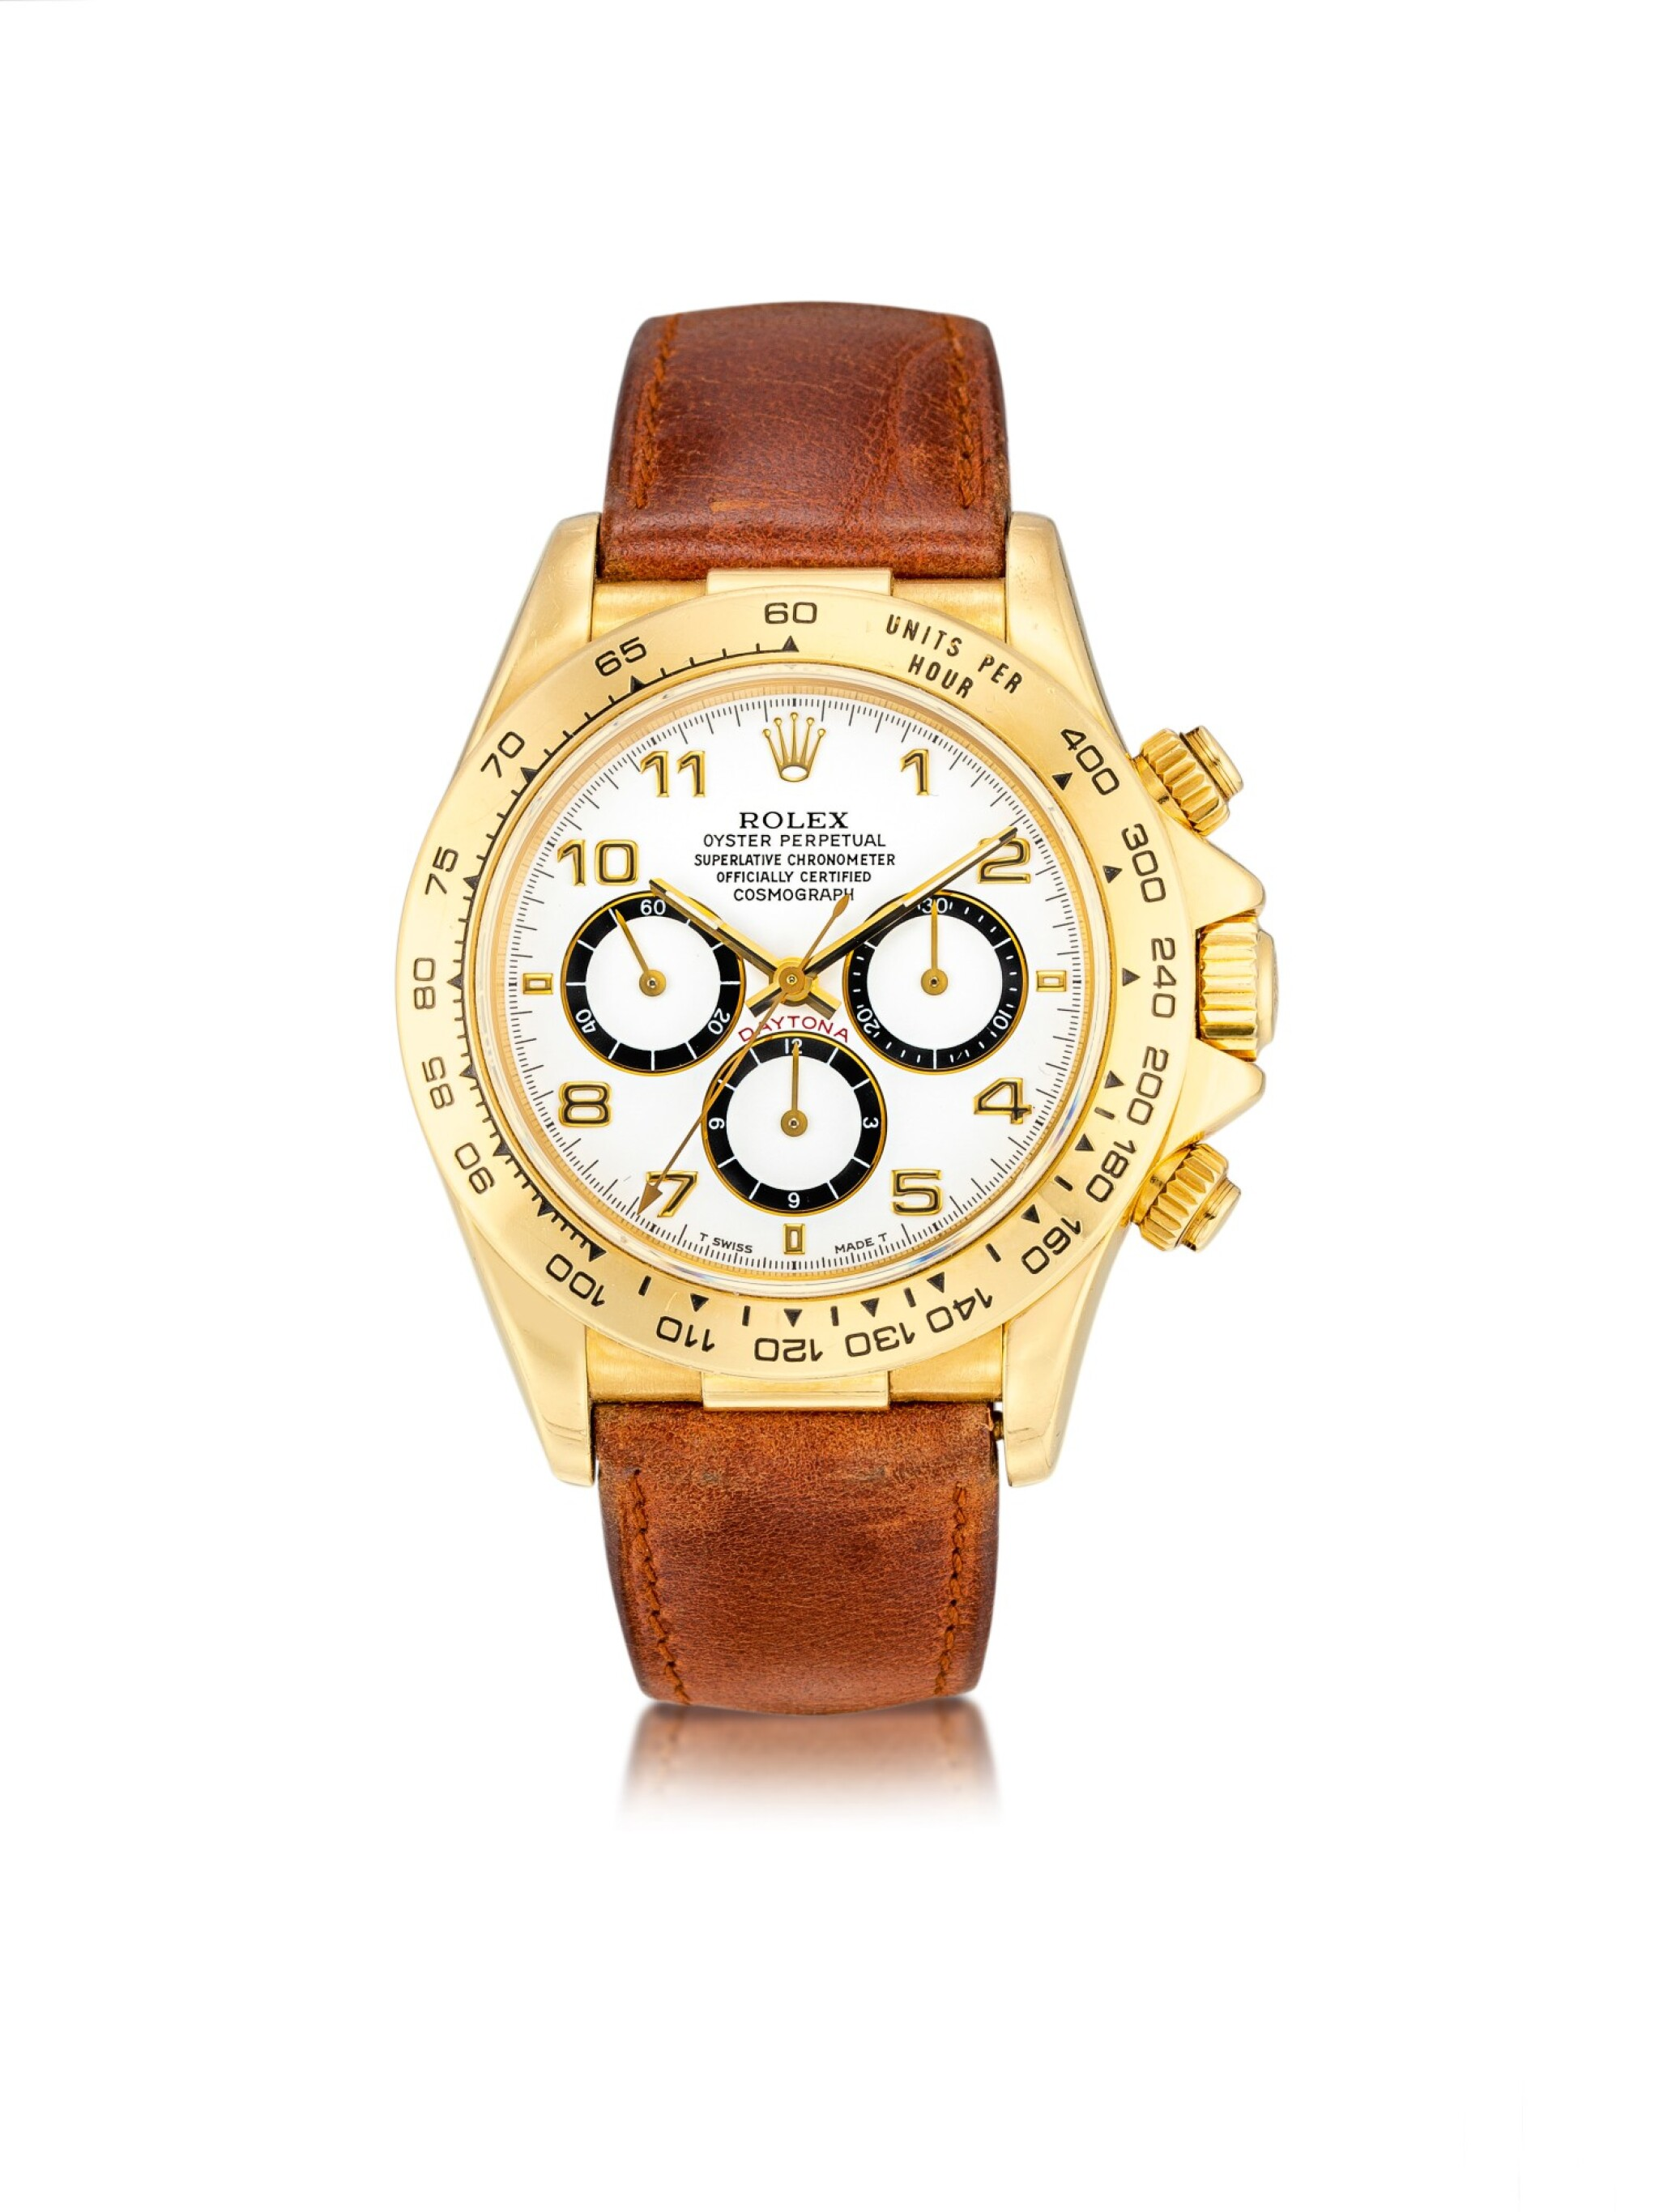 """View 1 of Lot 8023. Rolex   Cosmograph Daytona """"Inverted 6"""", Reference 16518, A yellow gold chronograph wristwatch, Circa 1991   勞力士   Cosmograph Daytona """"Inverted 6"""" 型號16518   黃金計時腕錶,約1991年製."""